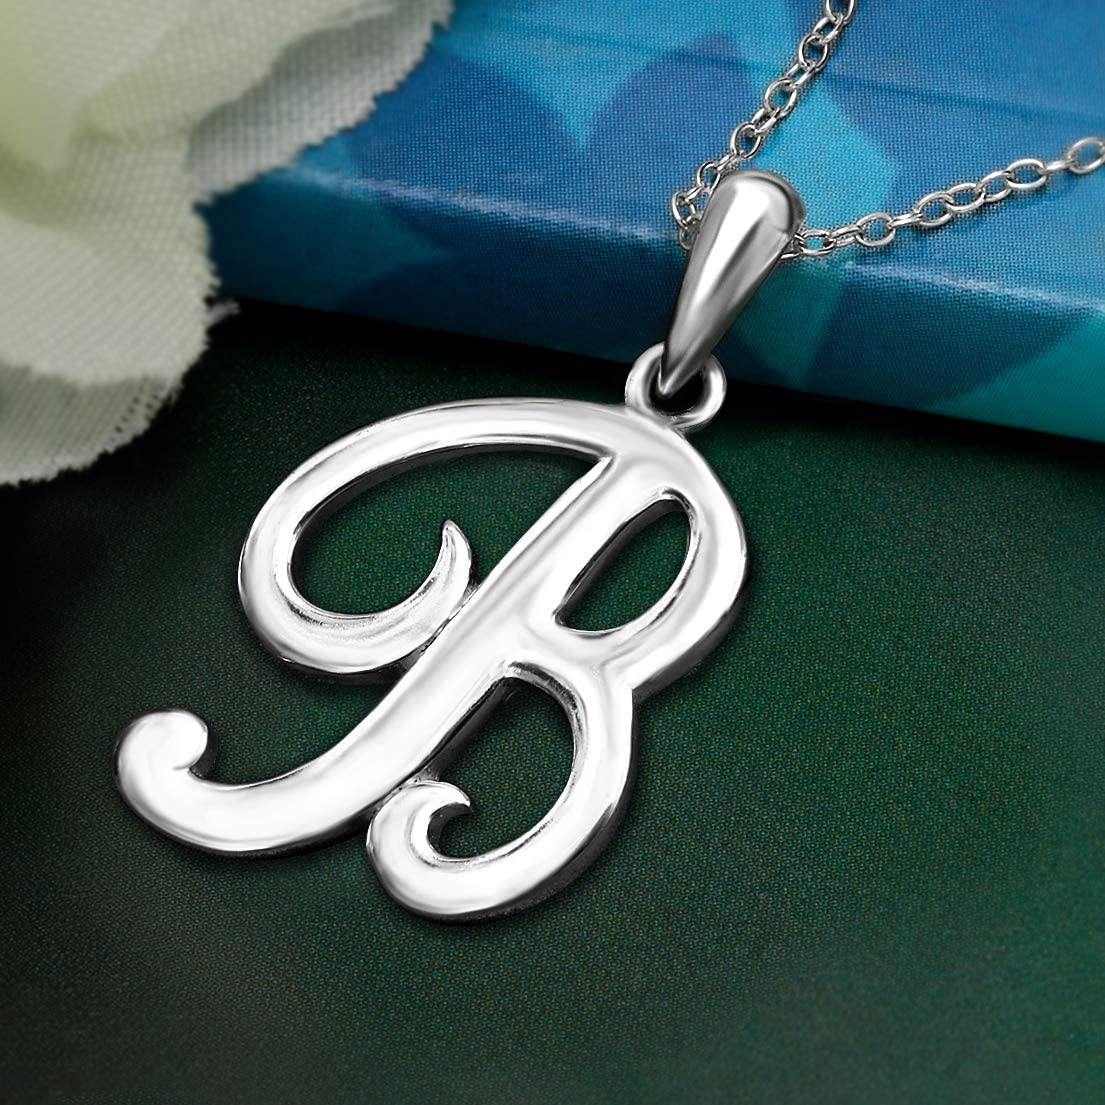 Sea of Ice Sterling Silver Initial Alphabet Letters Pendant Necklace from A-Z 18 inch